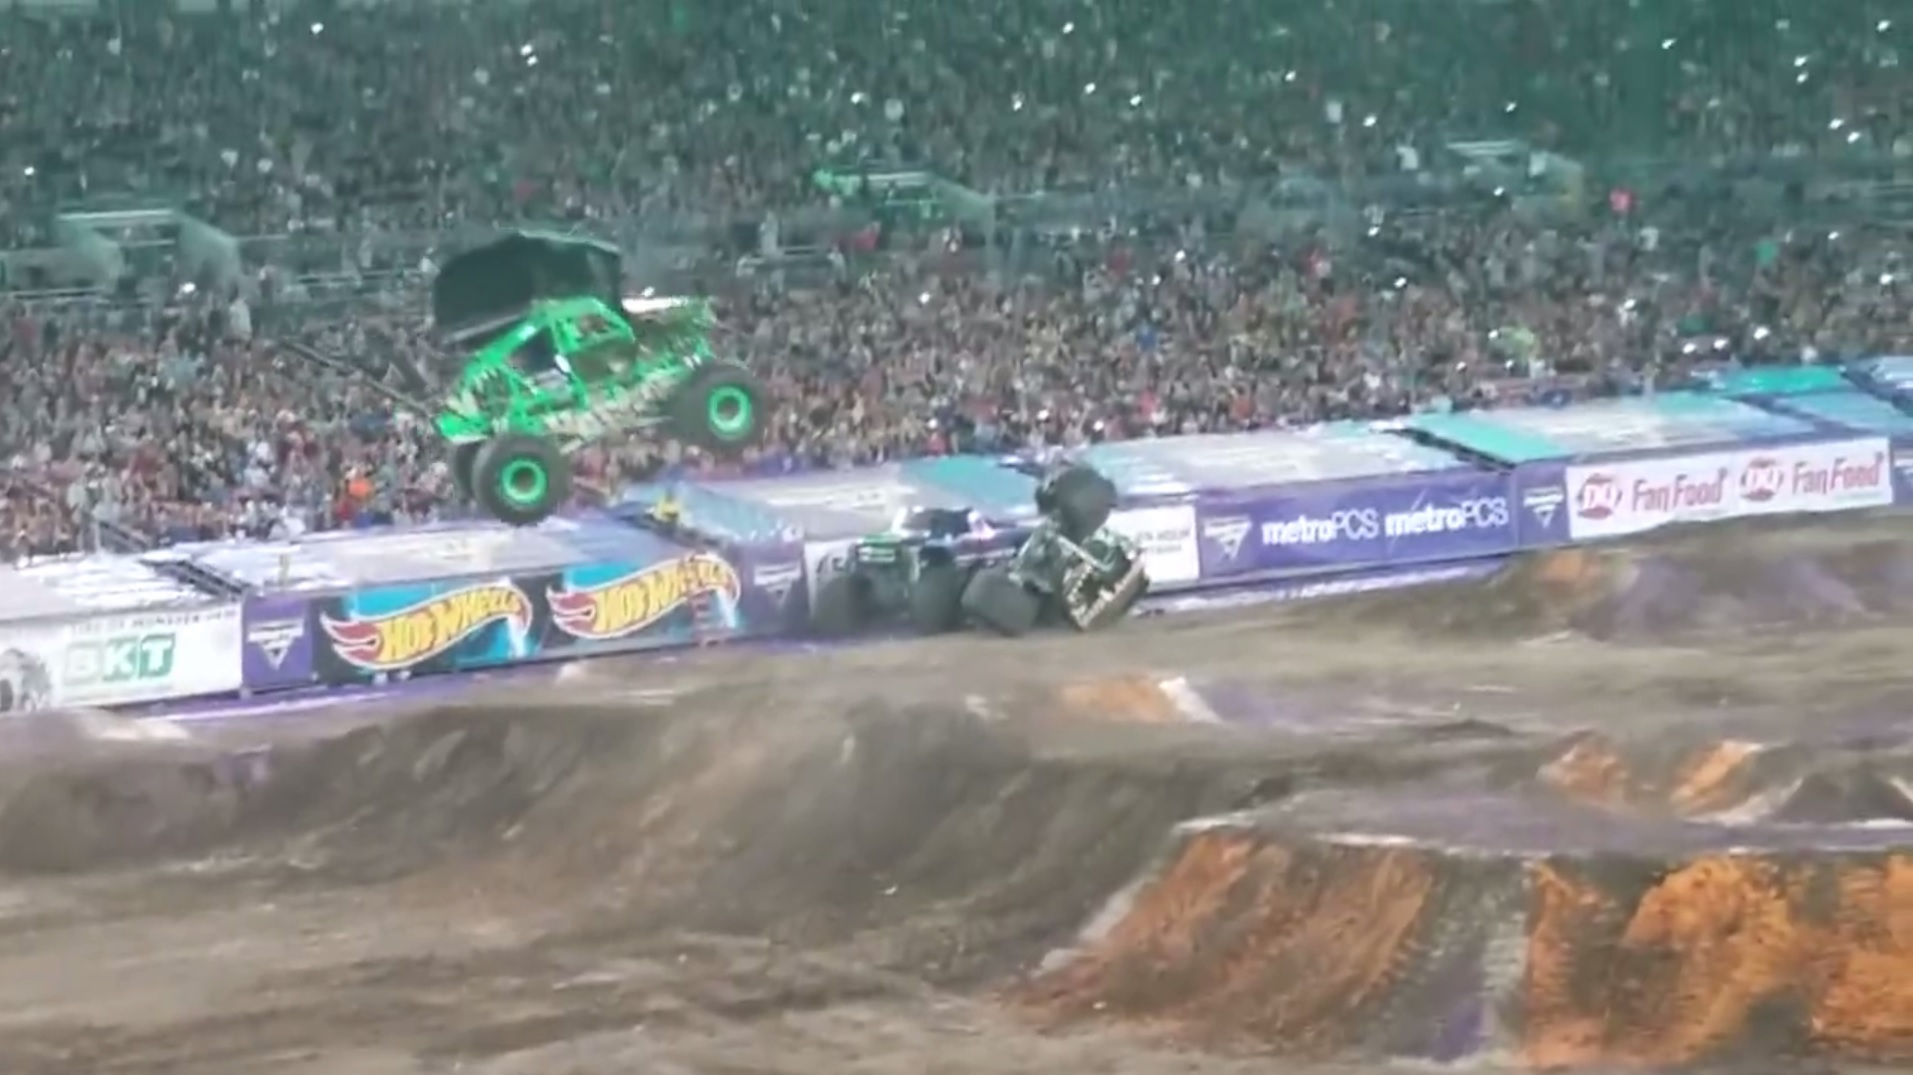 Video Shows Grave Digger Injury Incident At Monster Jam